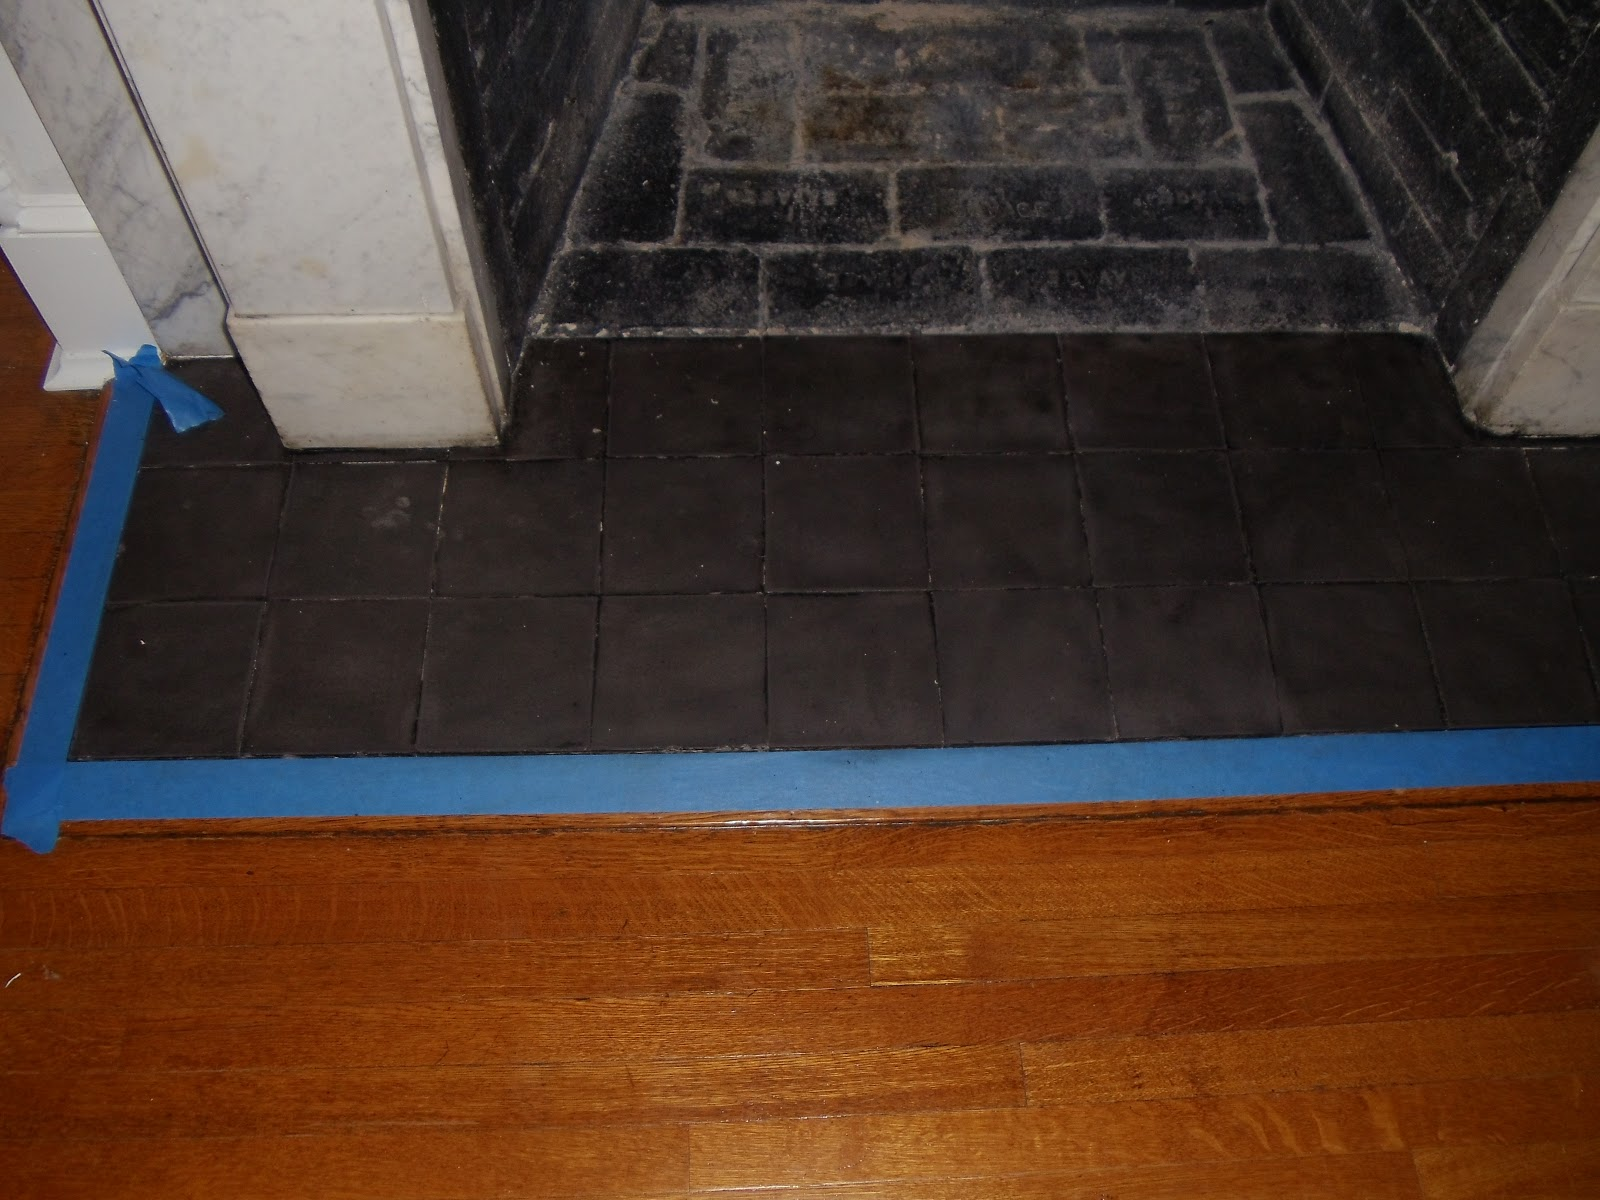 Worthwhile domicile revamping boobears fireplace someone painted black paint over slate um ok i prefer just the slate i dont see a need to paint black slate black do you different strokes i guess dailygadgetfo Images